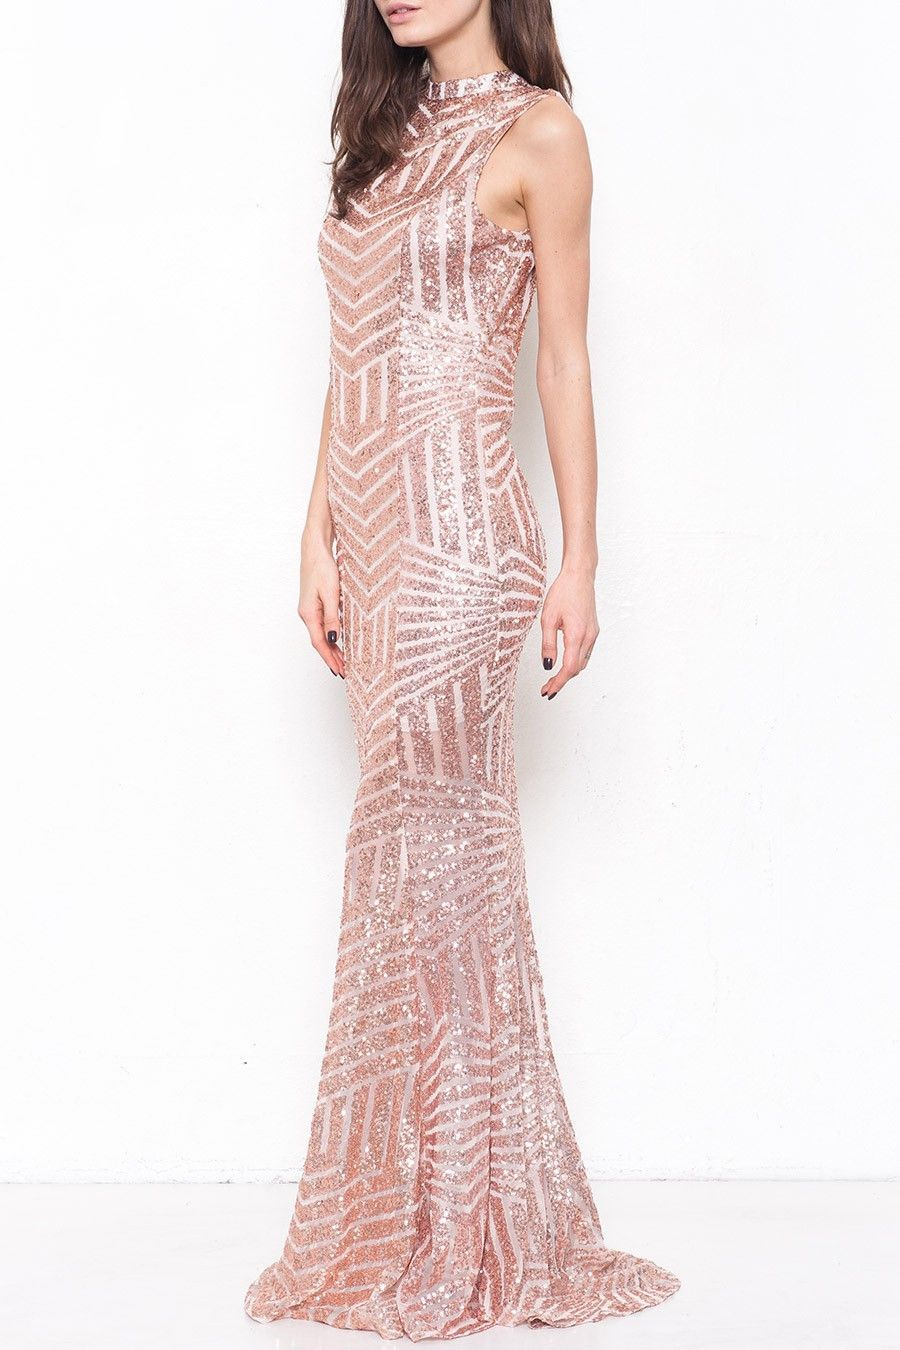 Buy Adrian Sequined Dress in Rose Gold at ROUTE 32 for only $ 78.00 ...